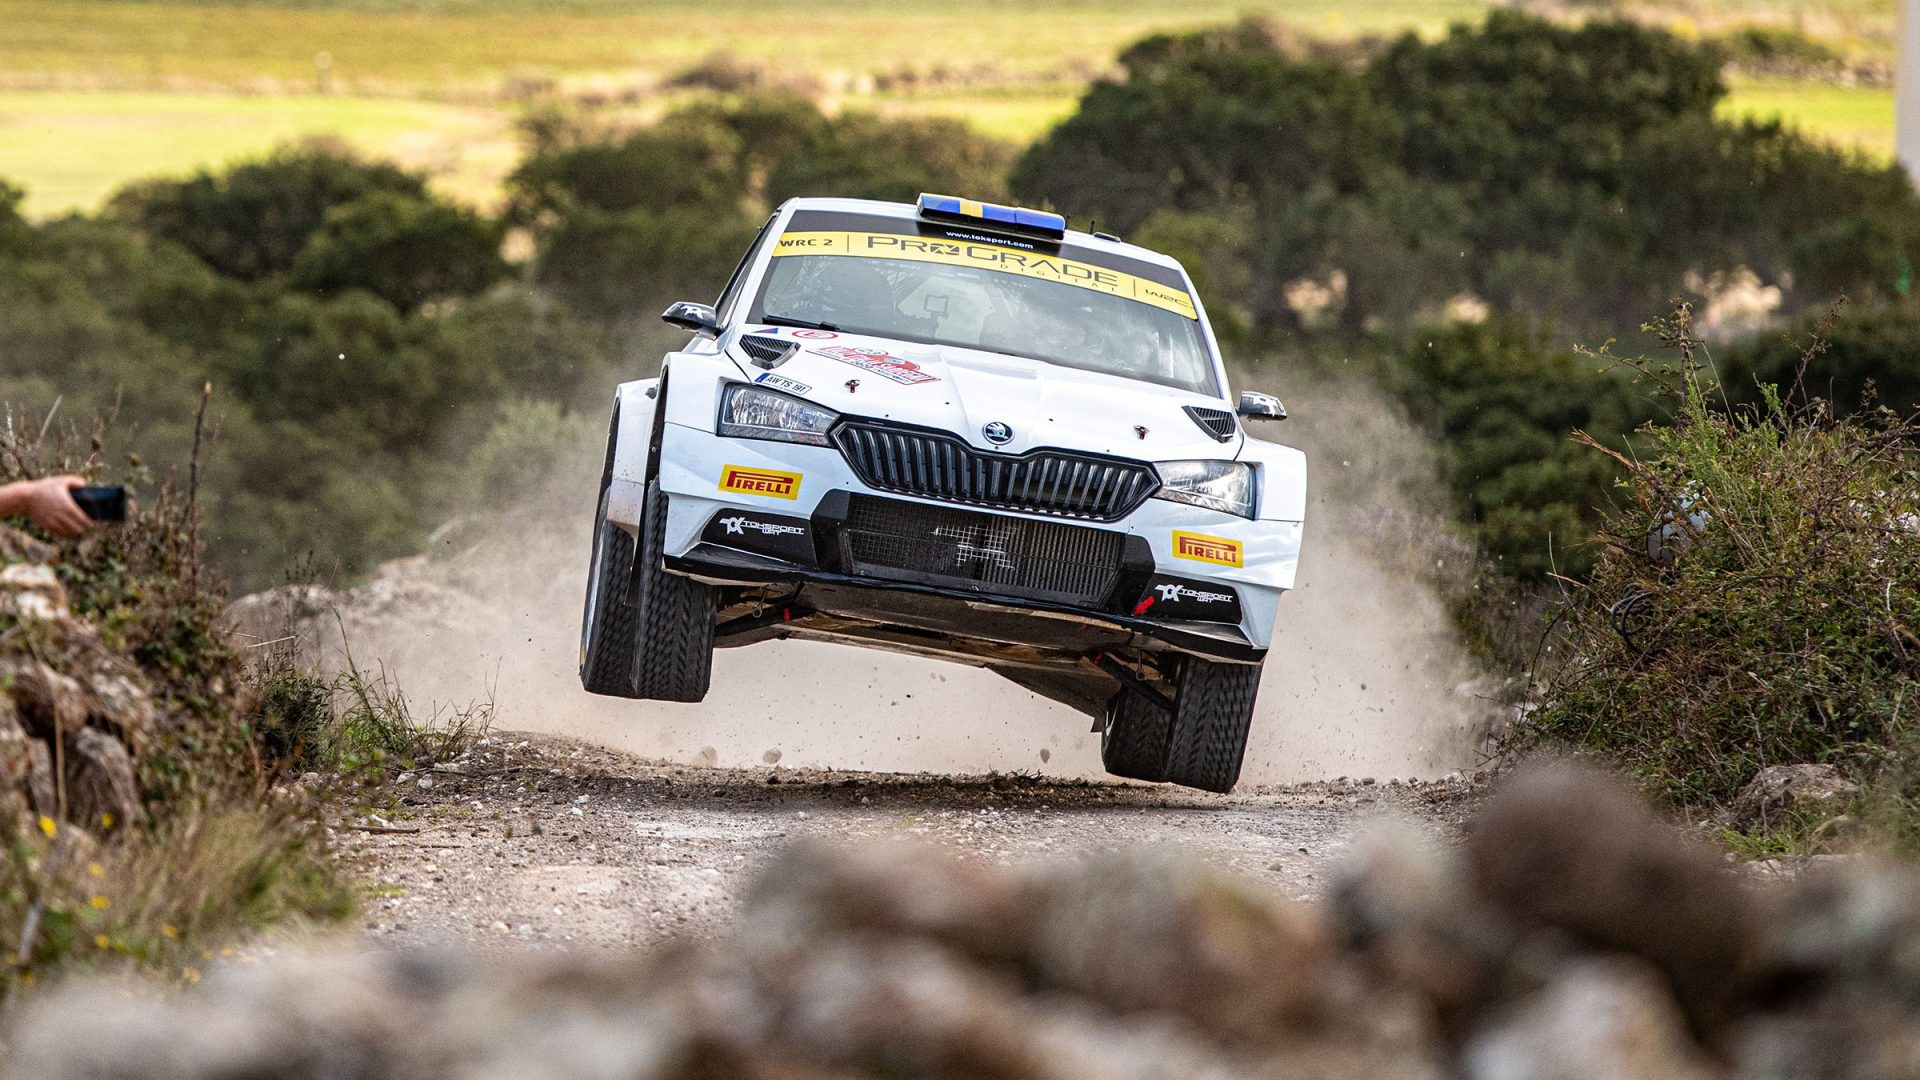 Download Rally Italia Sardegna Wallpapers for Your Phone